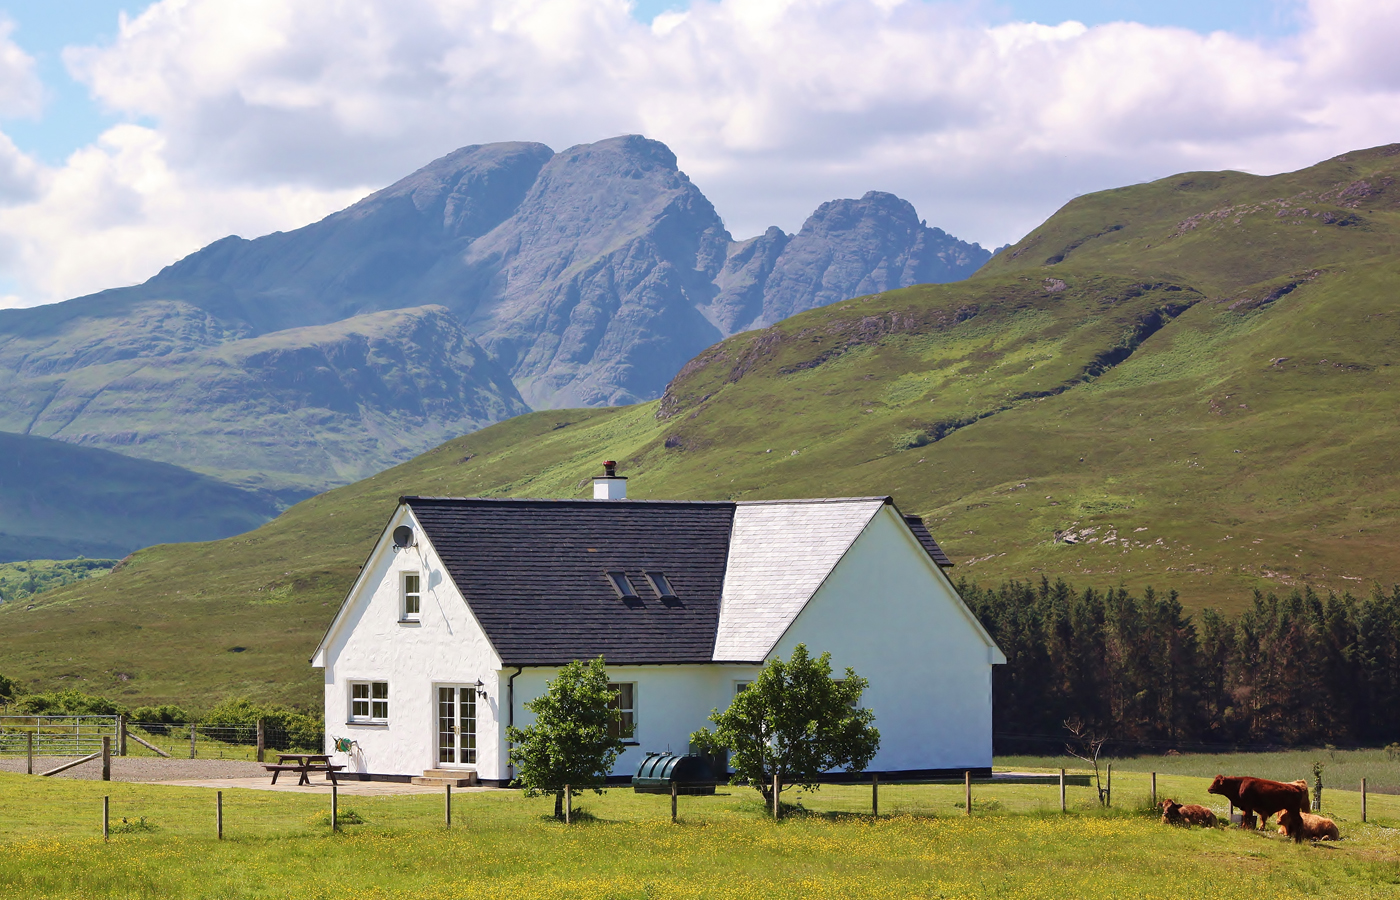 Strath Glebe Cottage, Isle of Skye - just one of over 80 different self catering cottages on the Islands and Highlands Cottages website